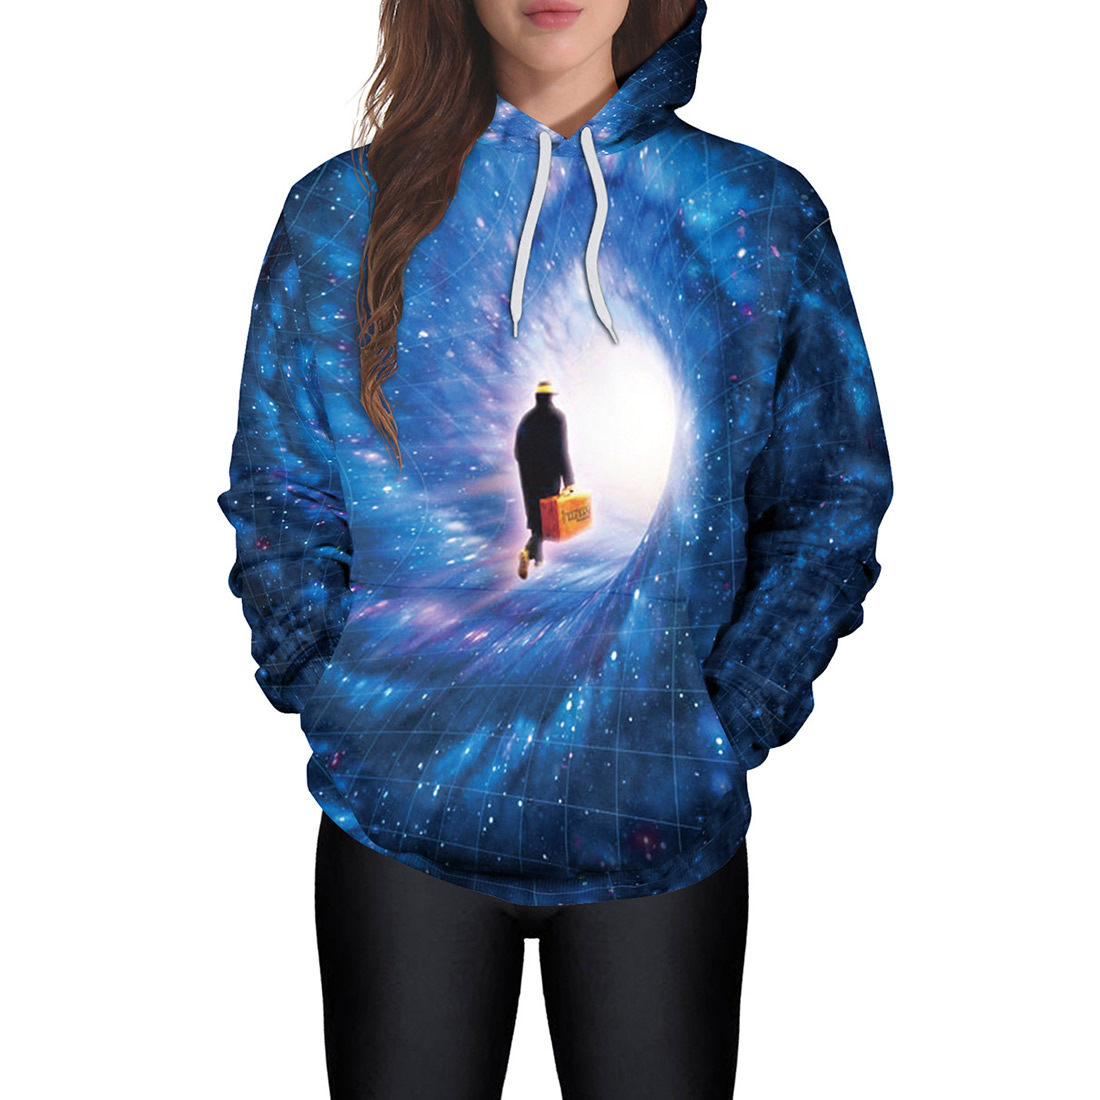 Space Galaxy Hoodies Men/Women 3d Sweatshirts With Hat Print Blue character Autumn Winter Thin Hooded Hoody Tops